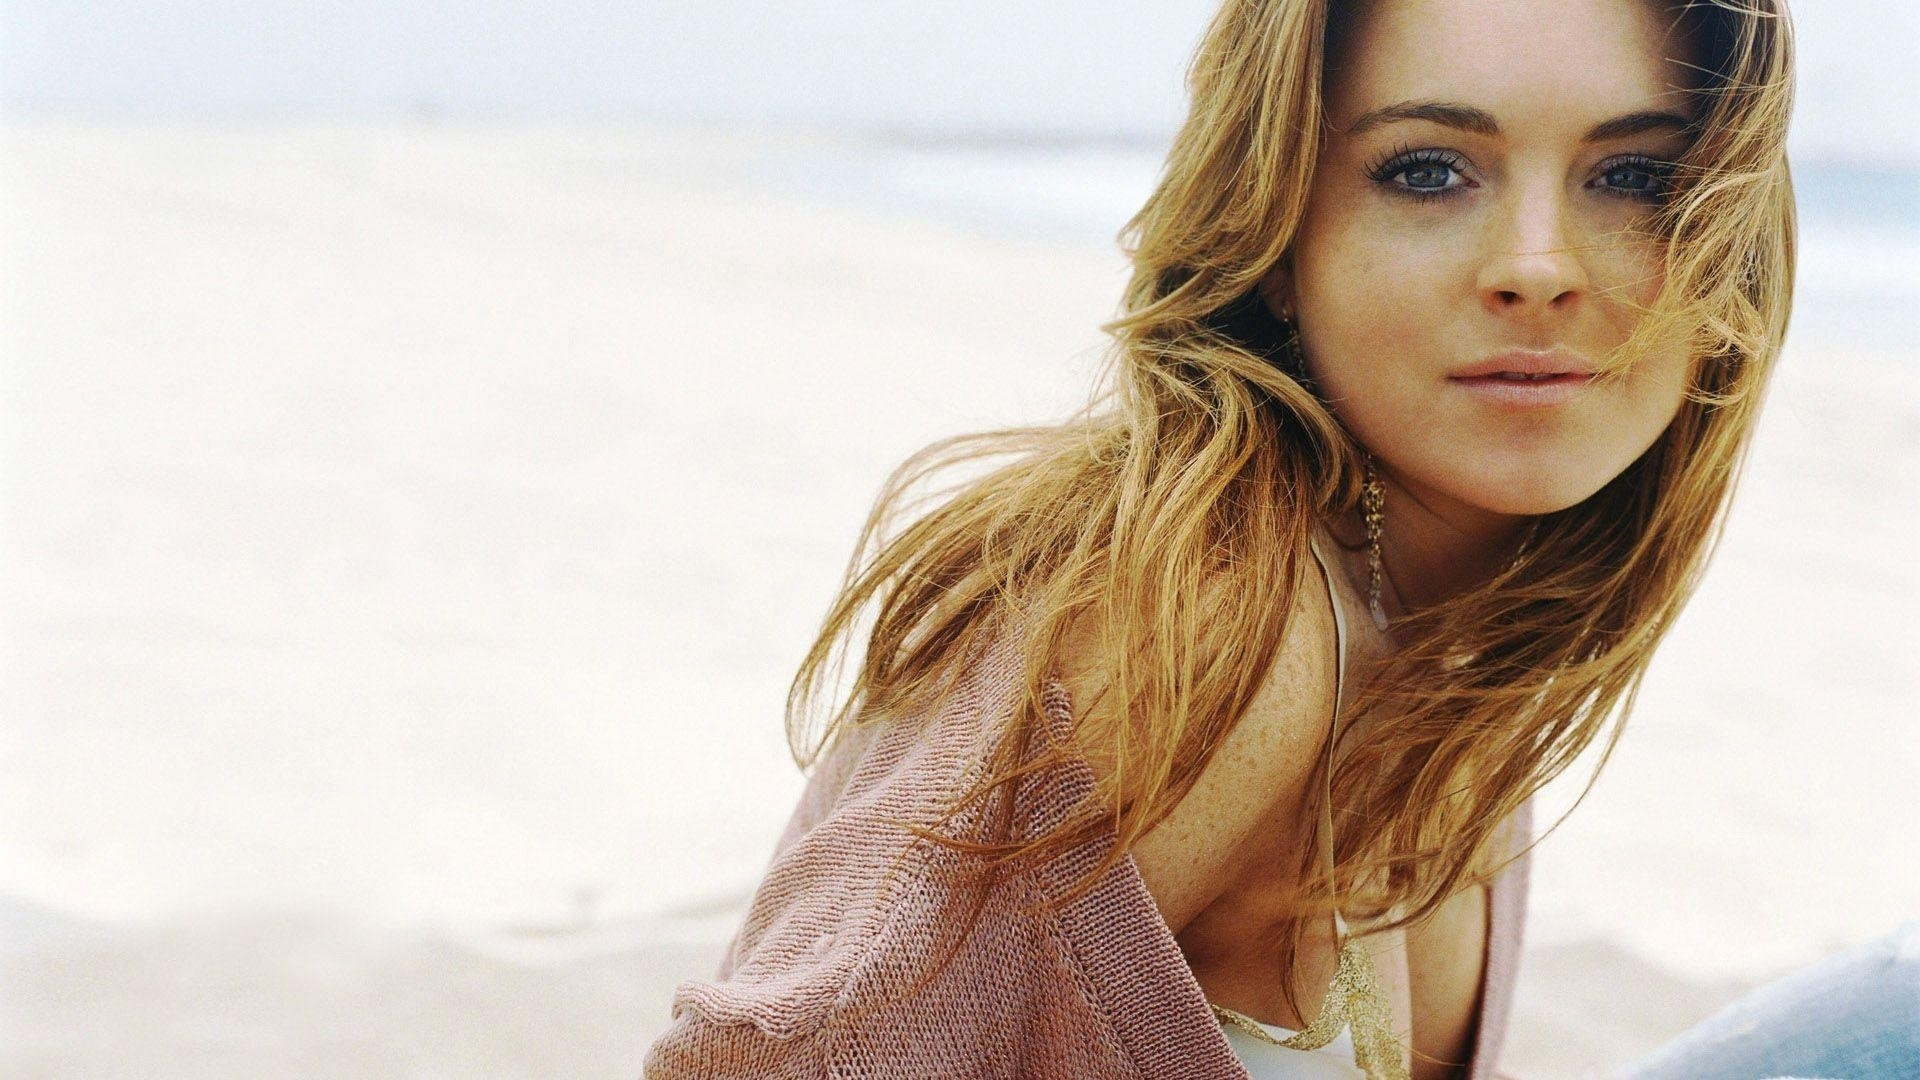 10 Most Popular Lindsay Lohan Wall Paper FULL HD 1920×1080 For PC Background